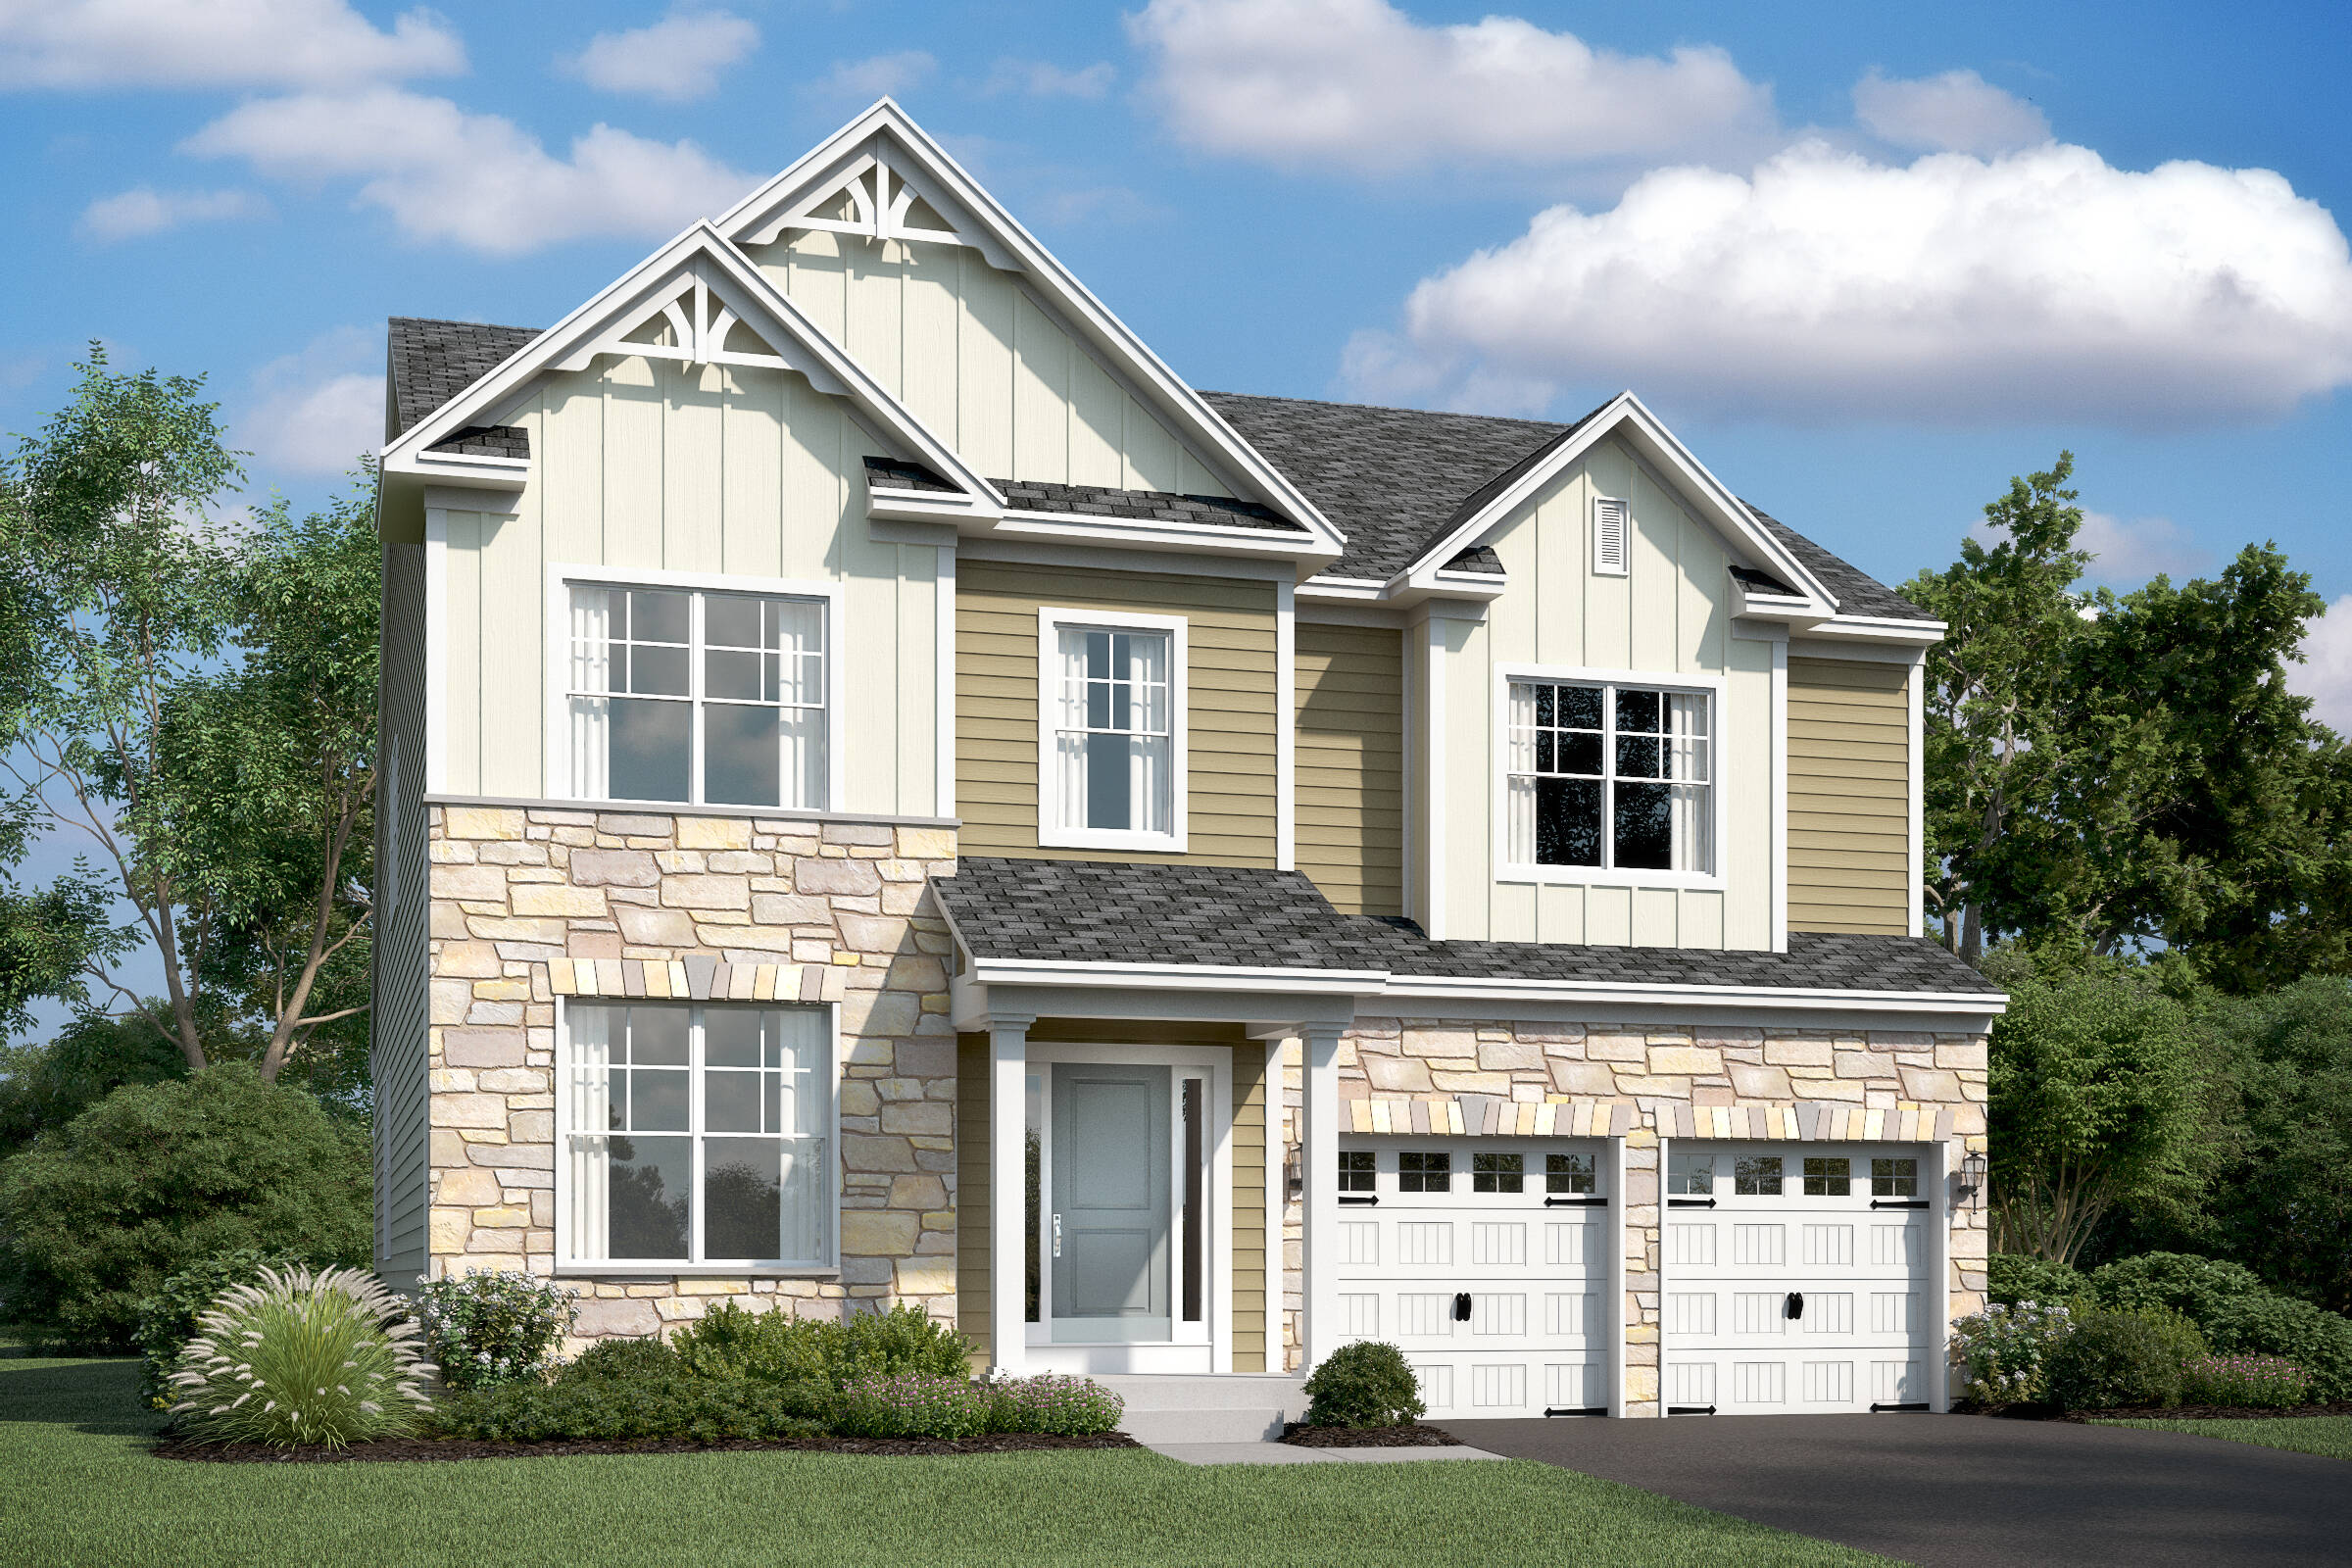 callahan-i-at-new-homes-at-eden-terrace-in-maryland